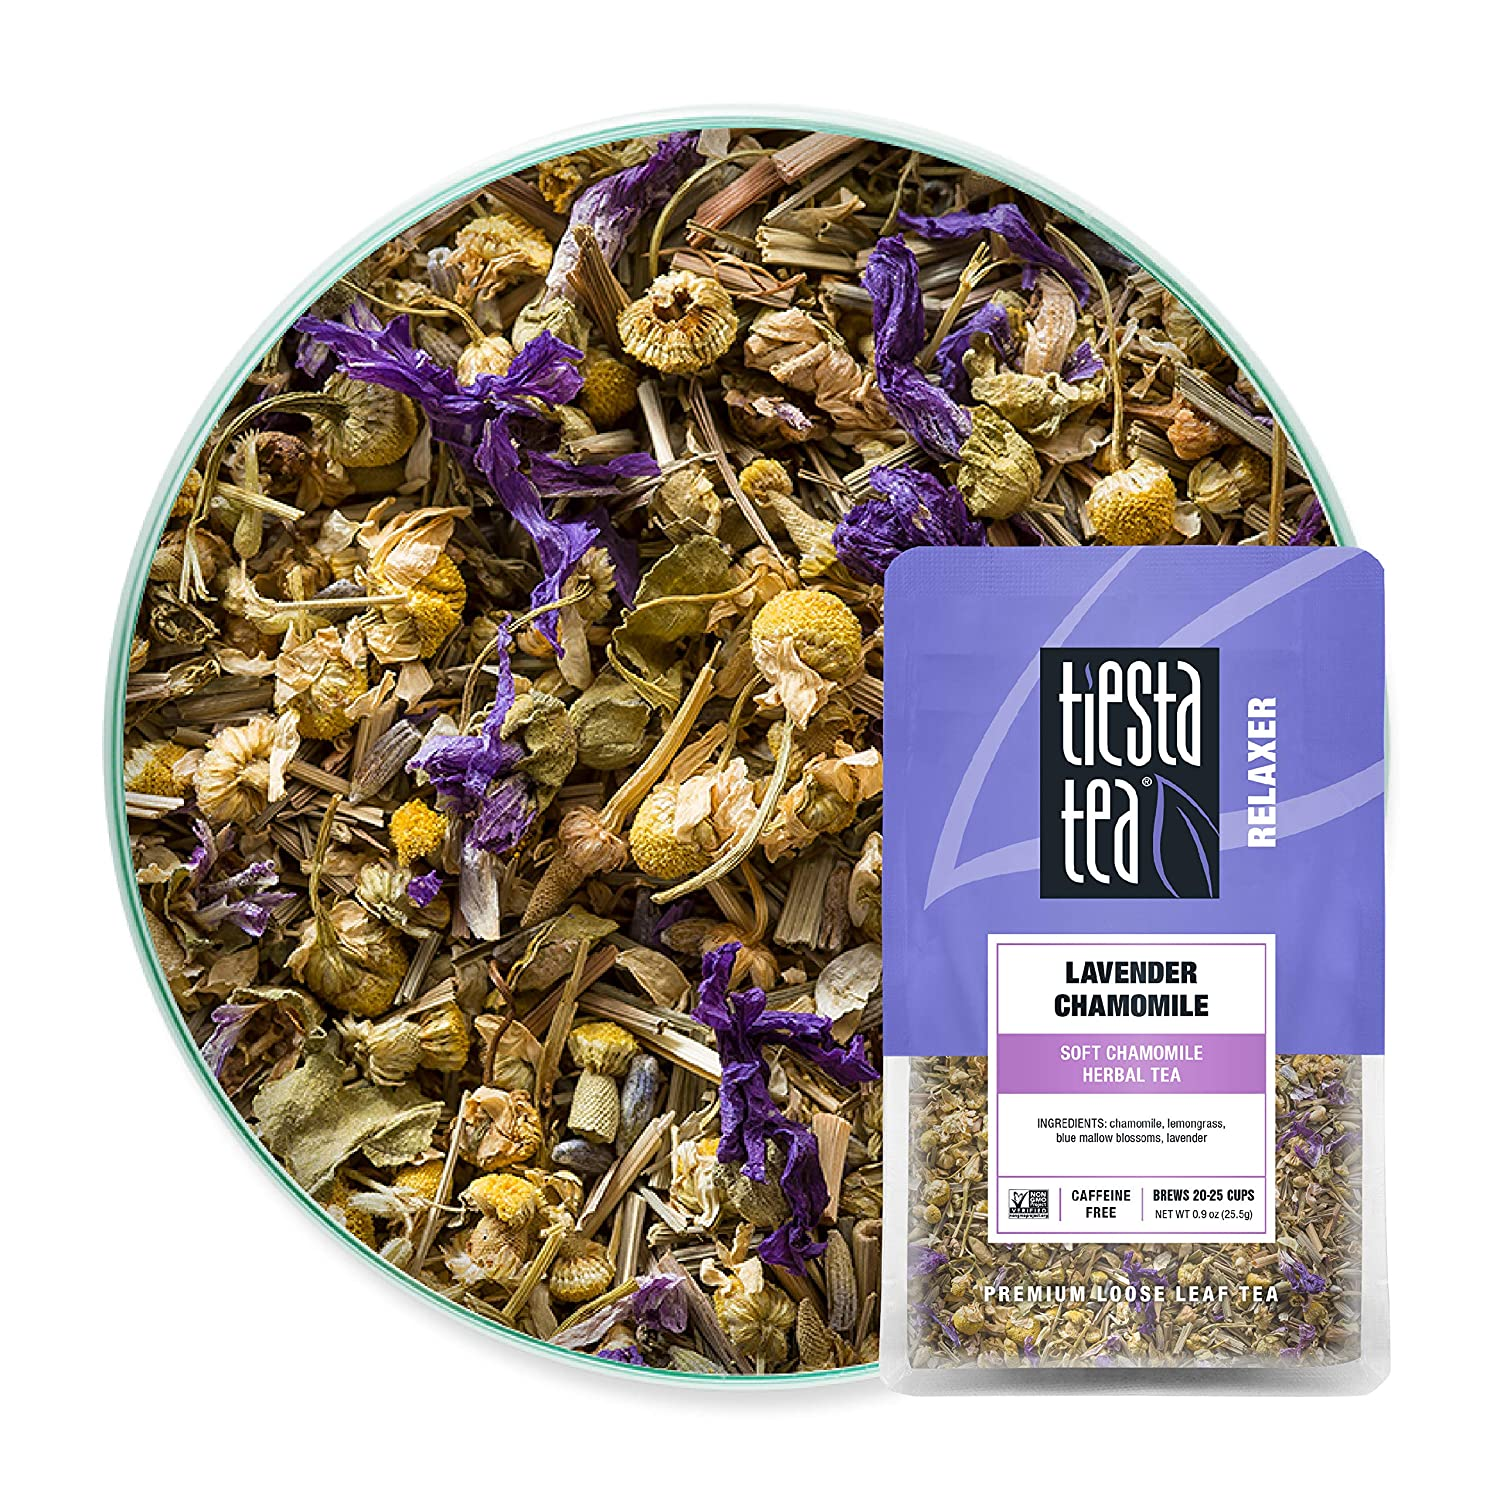 Herbal tea to stay calm for mothers